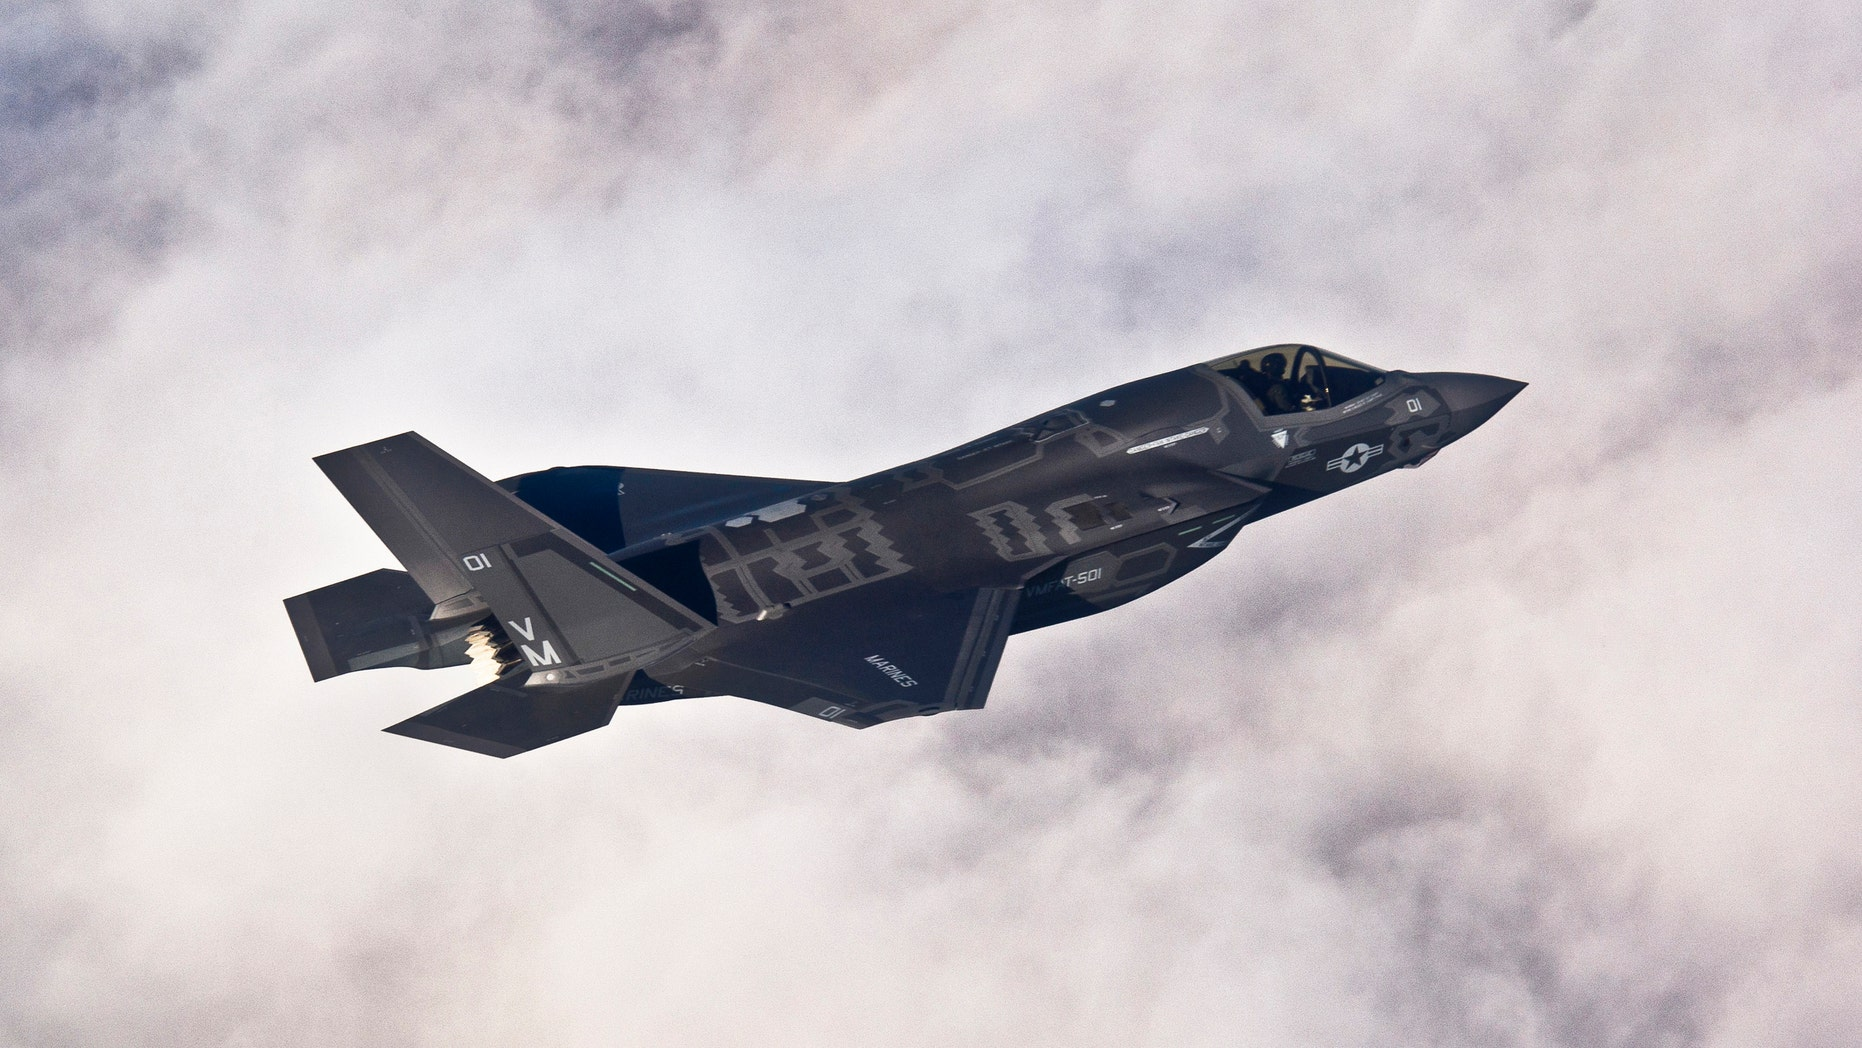 A Lockheed Martin F-35B Lightning II joint strike fighter flies toward its new home at Eglin Air Force Base, Florida in this U.S. Air Force picture.